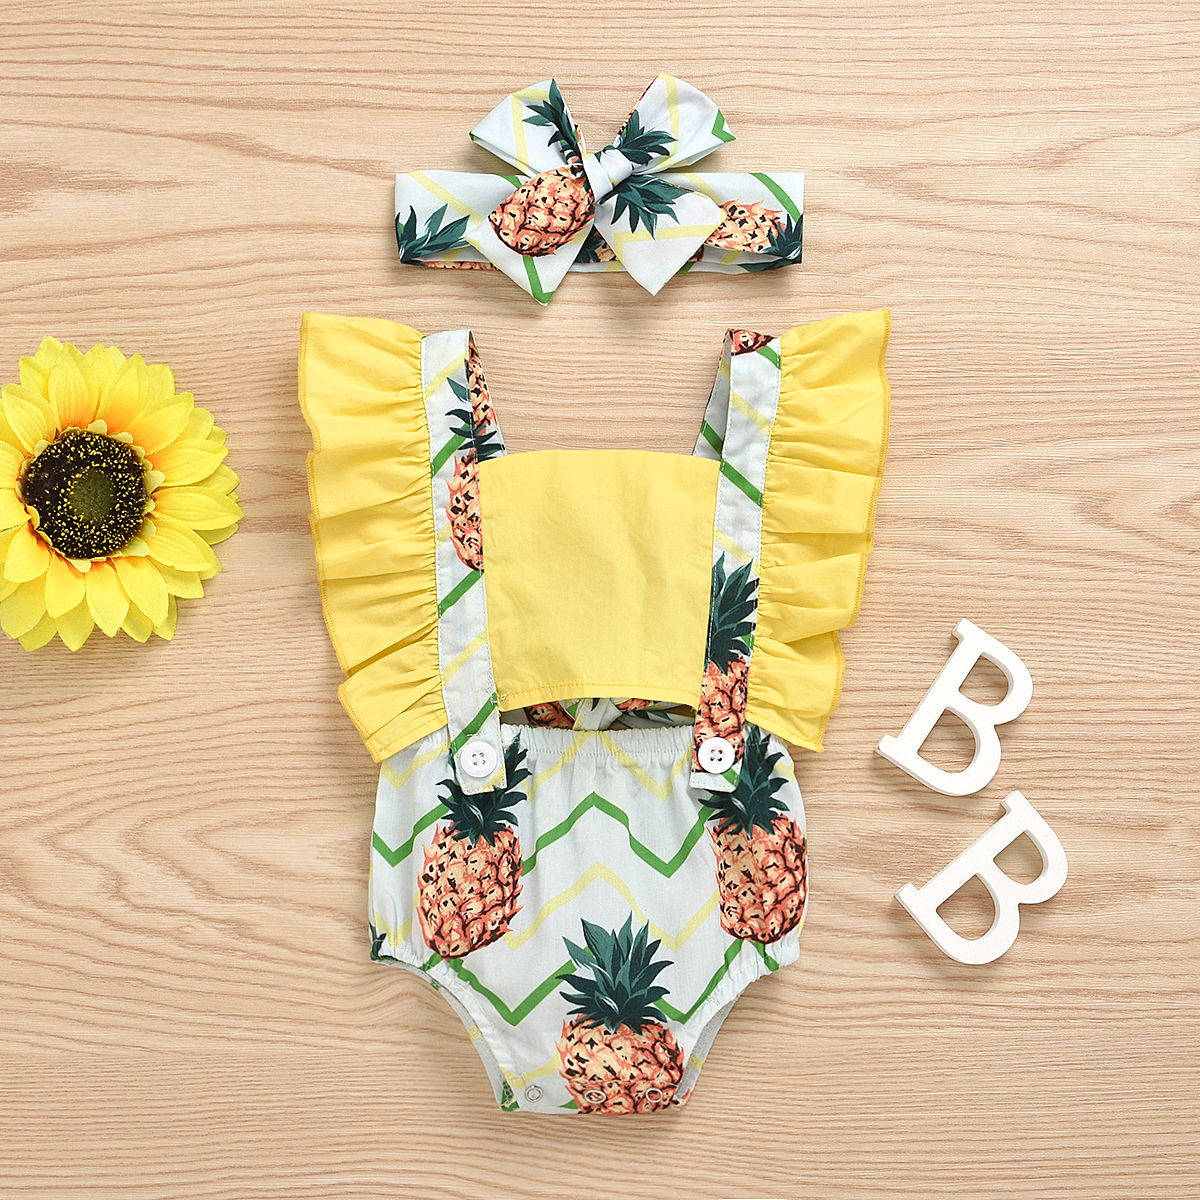 Pudcoco Newborn Baby Girl Clothes Pineapple  Print Sleeveless Ruffle Strap Romper Jumpsuit Headband 2Pcs Outfits Sunsuit Clothes